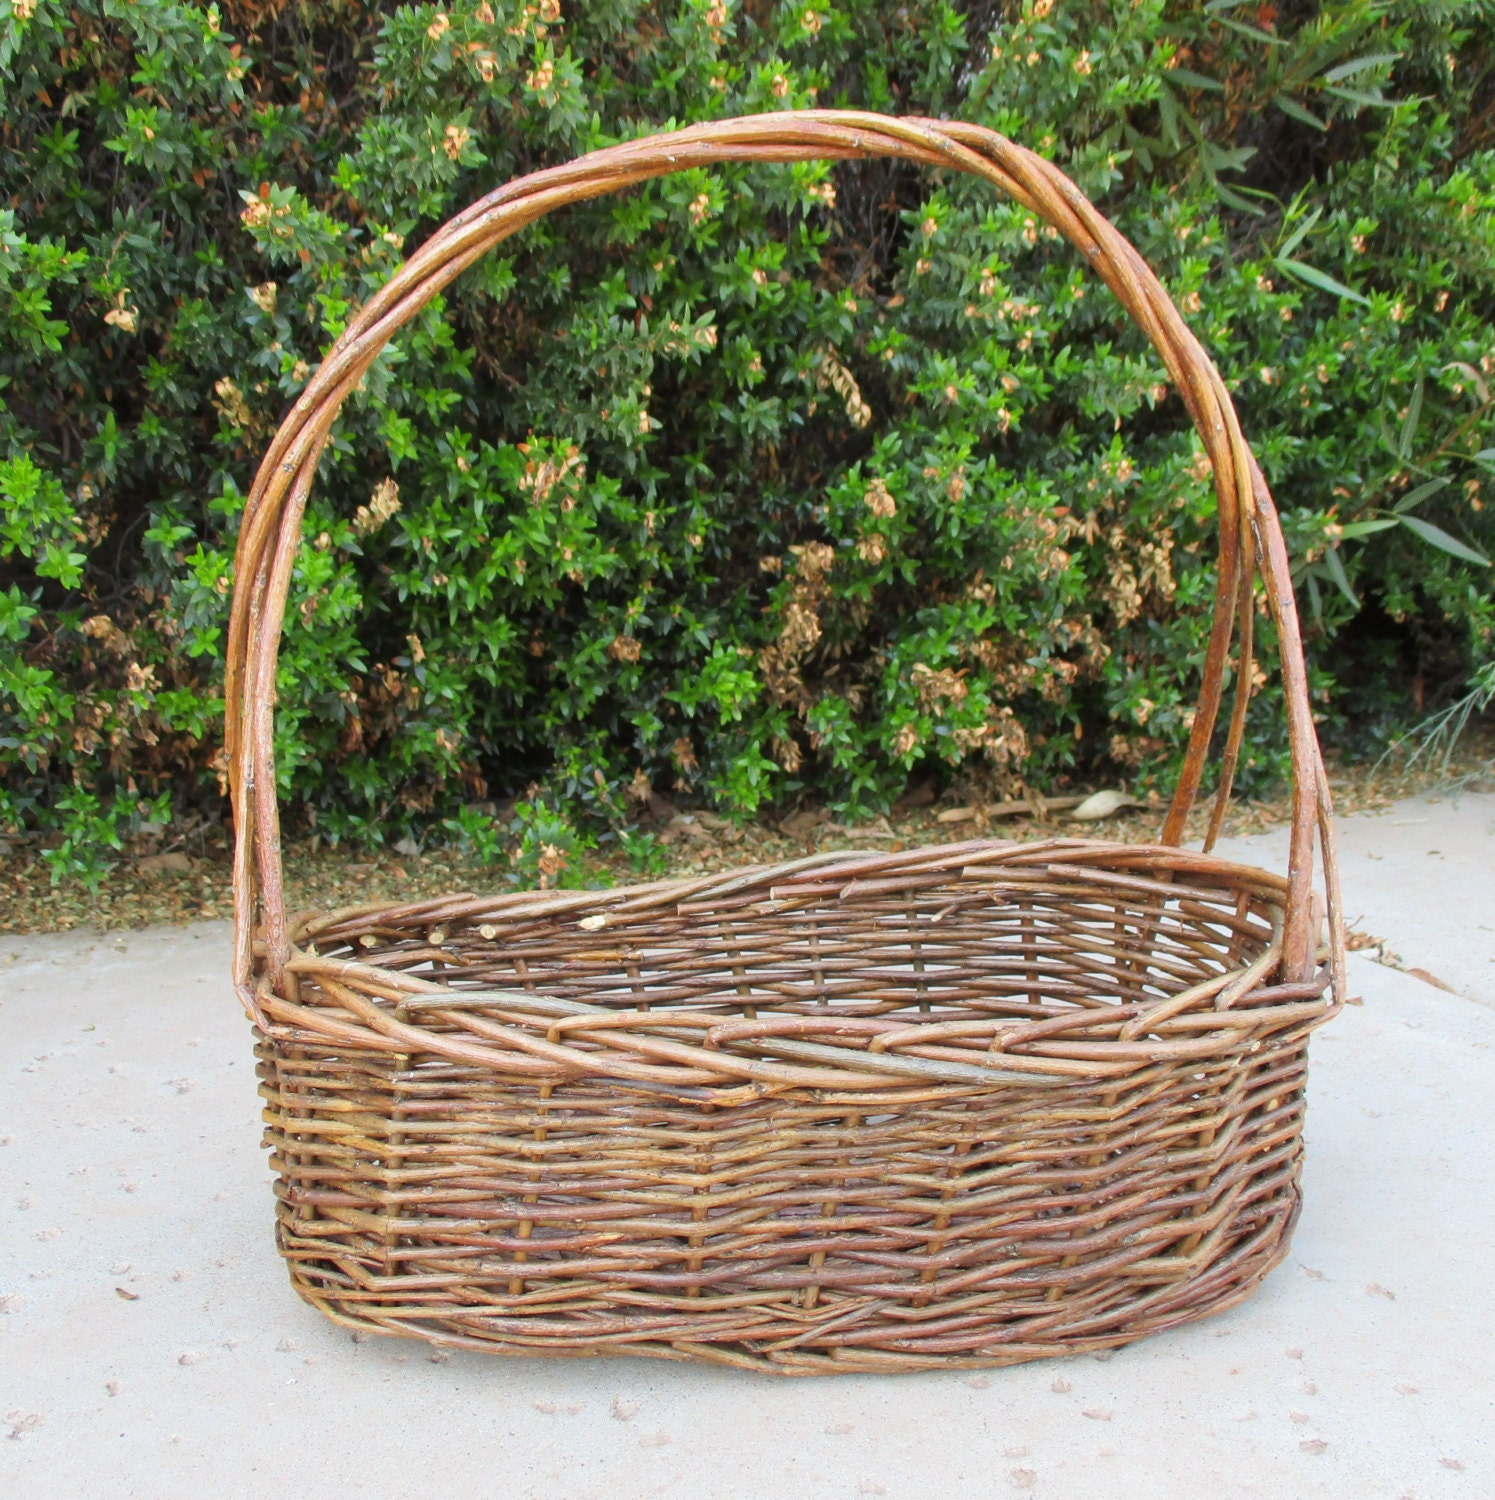 How To Weave A Basket Out Of Twigs : Woven gathering basket twig with handle rustic vintage